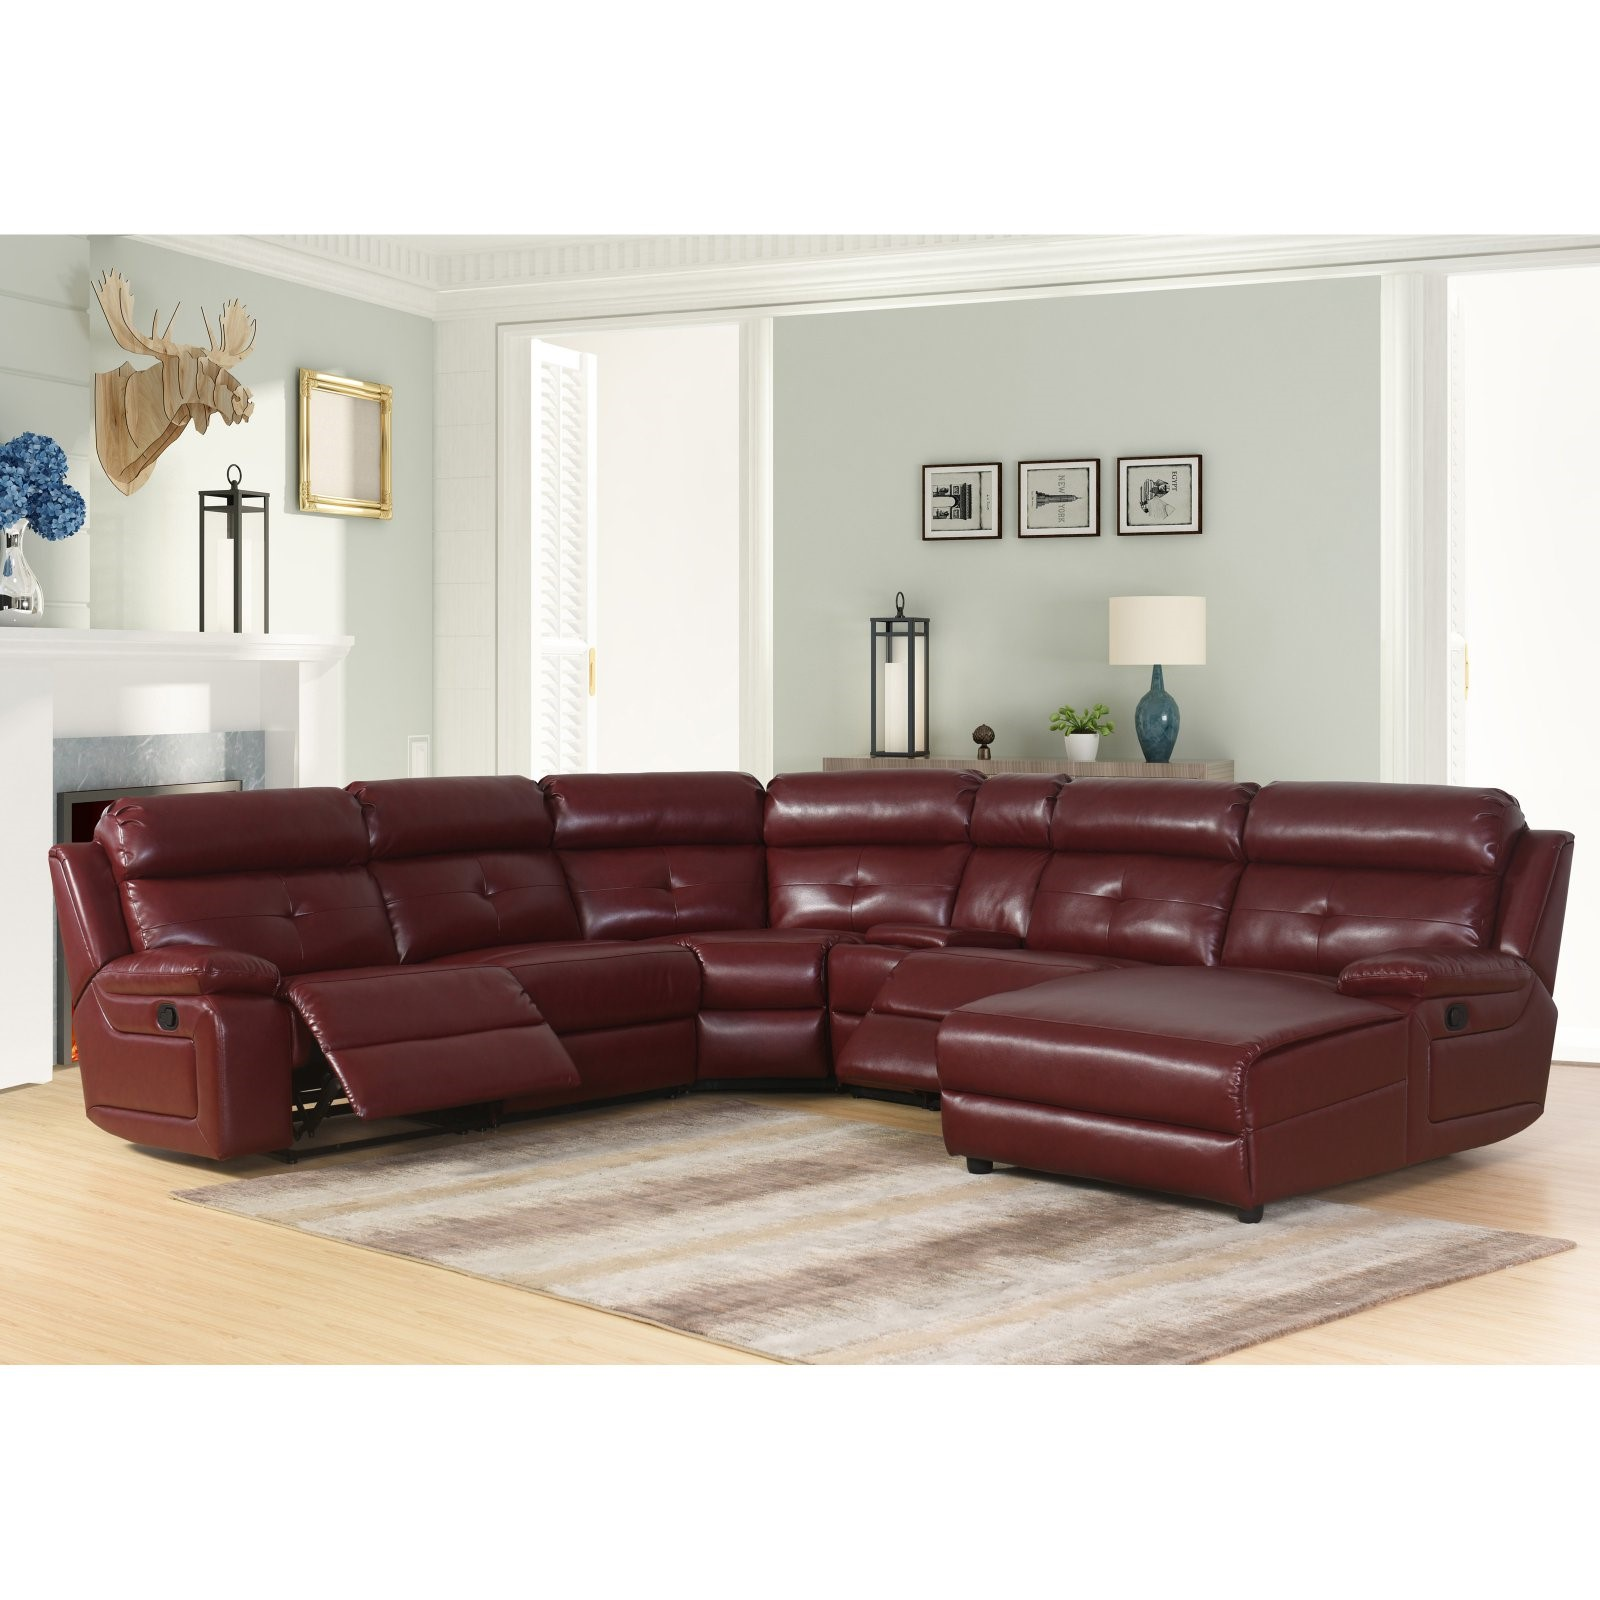 Abbyson Nate 6 Piece Bonded Leather Reclining Sectional Sofa